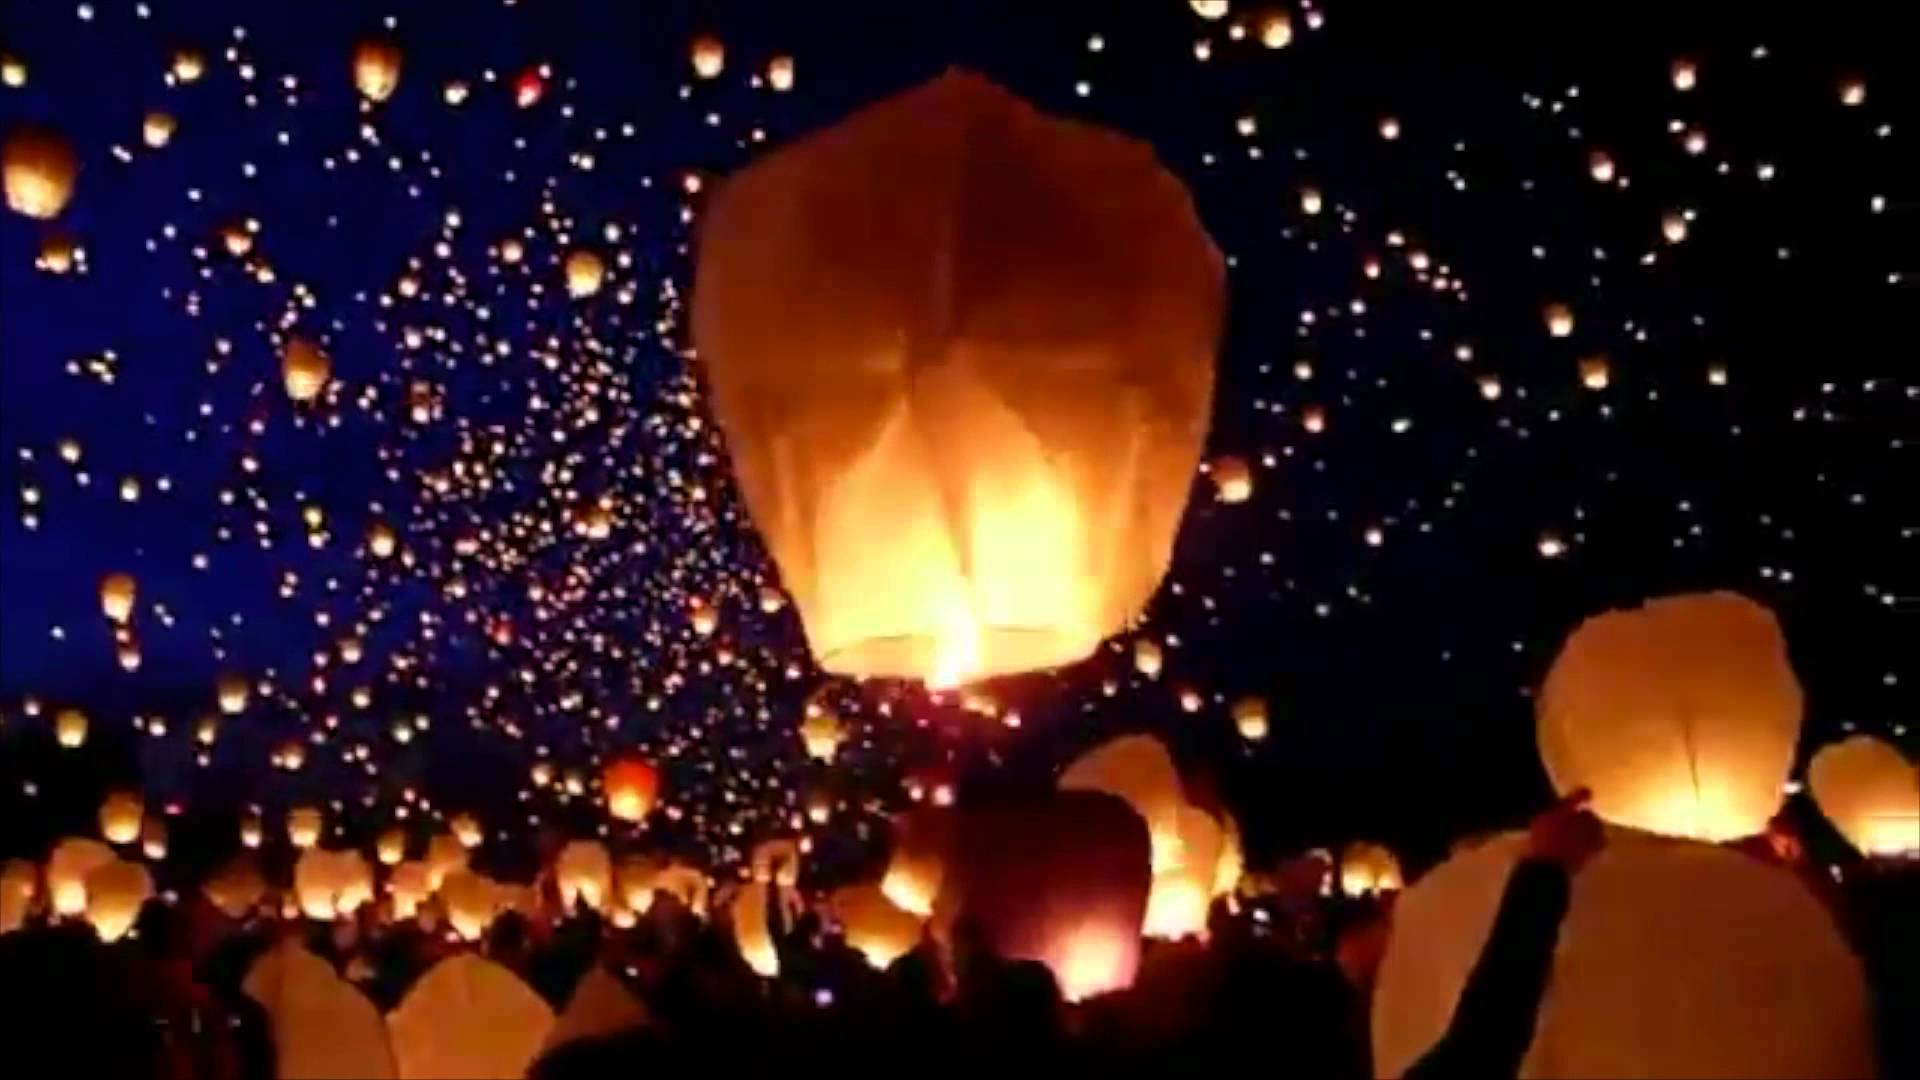 Sky Lanterns Wallpaper Iphone 54 Best Free Paper Lantern Wallpapers Wallpaperaccess